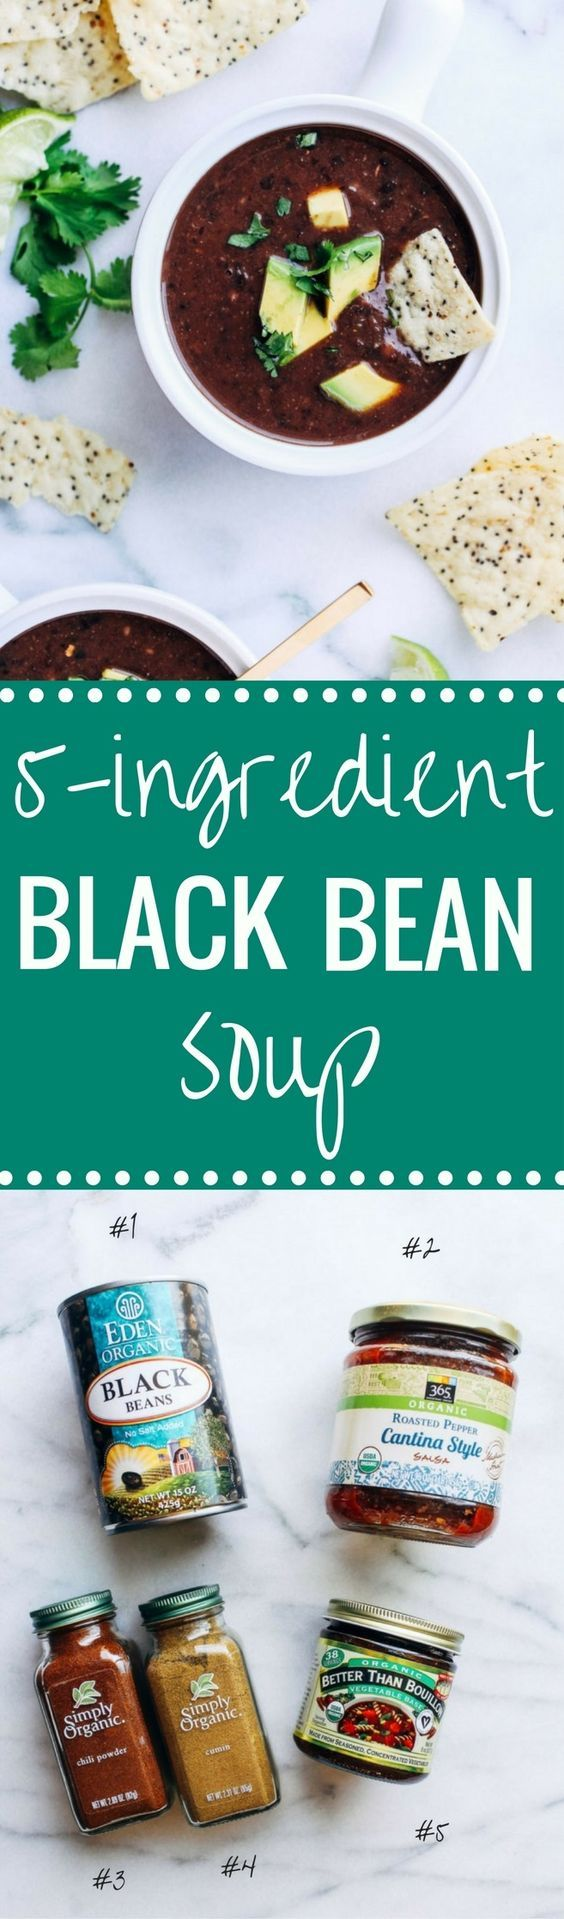 5-Ingredient Black Bean Soup- you won't believe how easy this soup is to make! Just 15 minutes is all you need for a quick and healthy meal that's packed full of protein and antioxidants! (vegan + gluten-free)